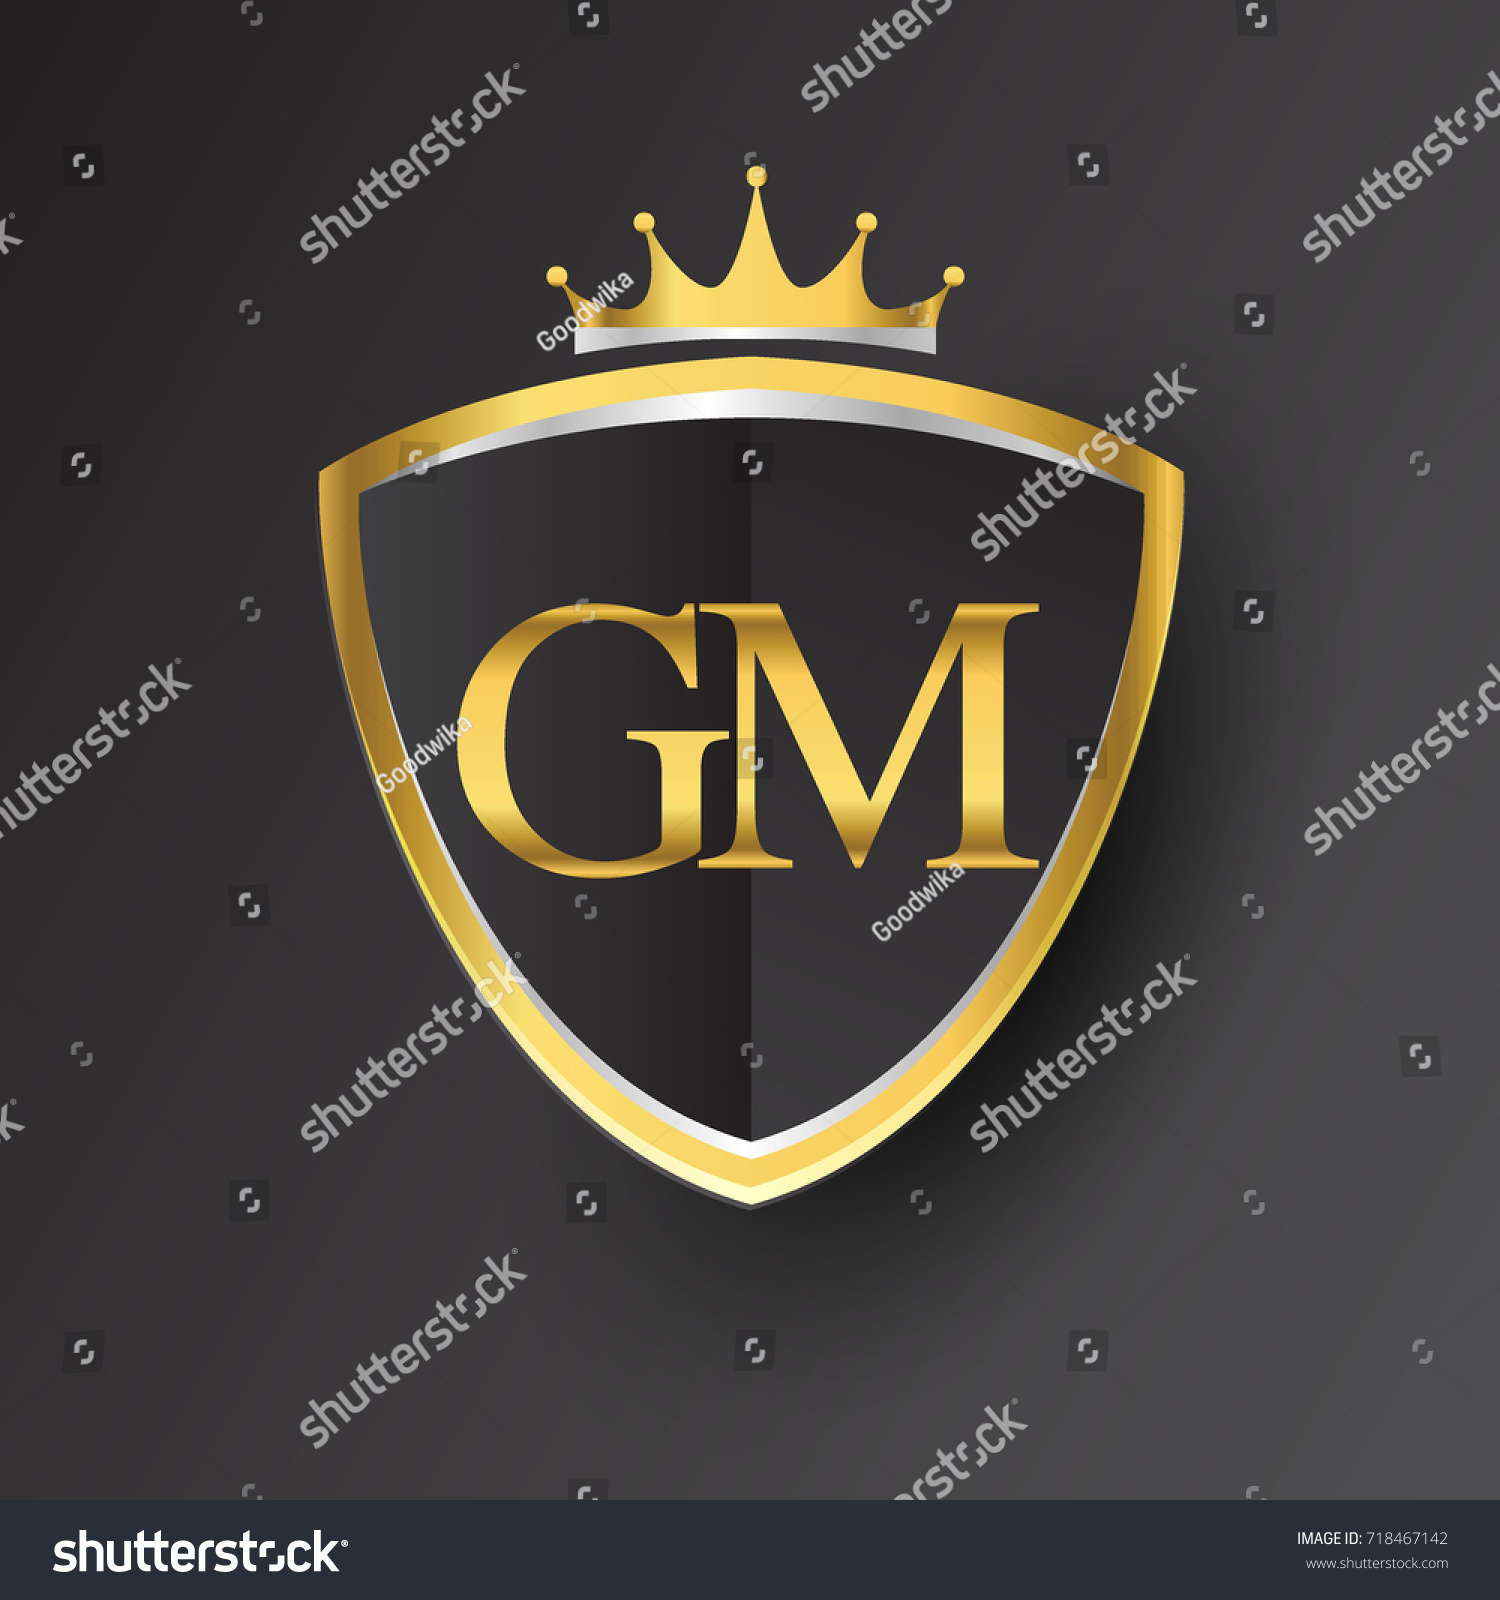 initial logo letter gm shield crown stock vector royalty free